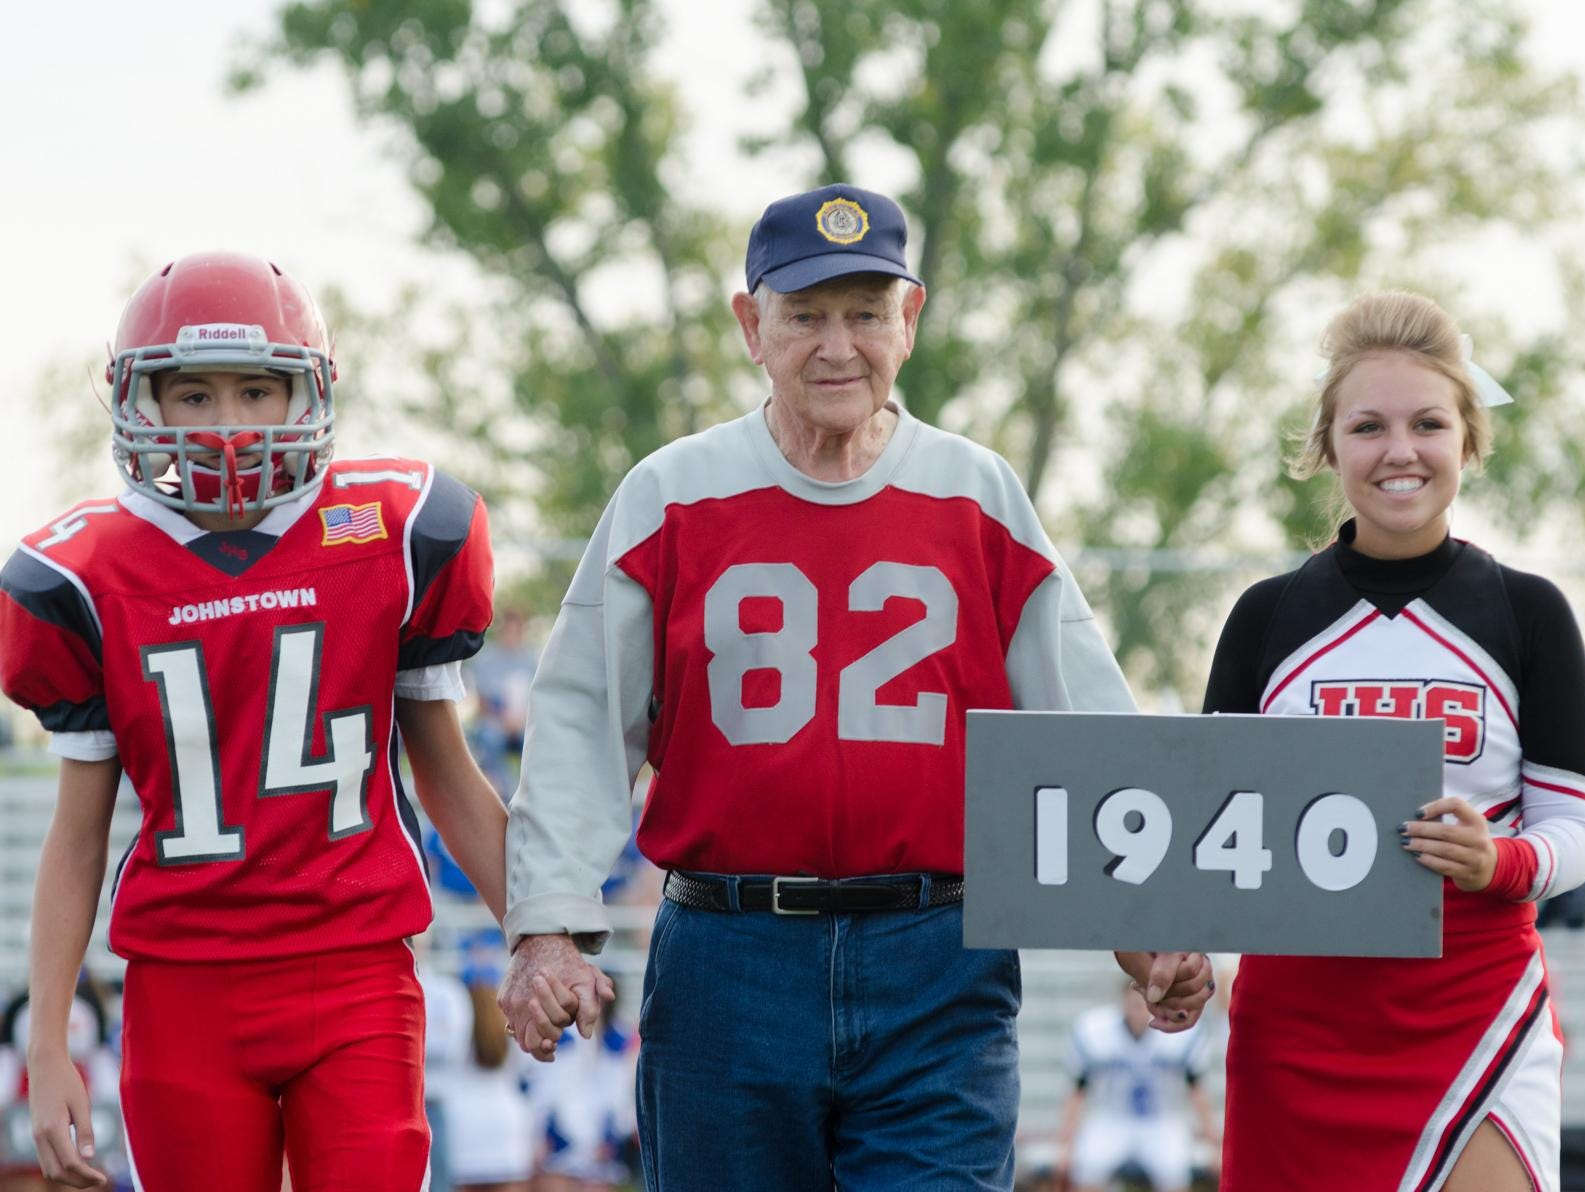 Don Jakeway, center, walks across the Johnstown field Friday on Alumni Night with his grandson, freshman Trenton Jakeway, 14, and a Johnstown cheerleader. It was the 75th anniversary of the 1940 team, which Jakeway played on.